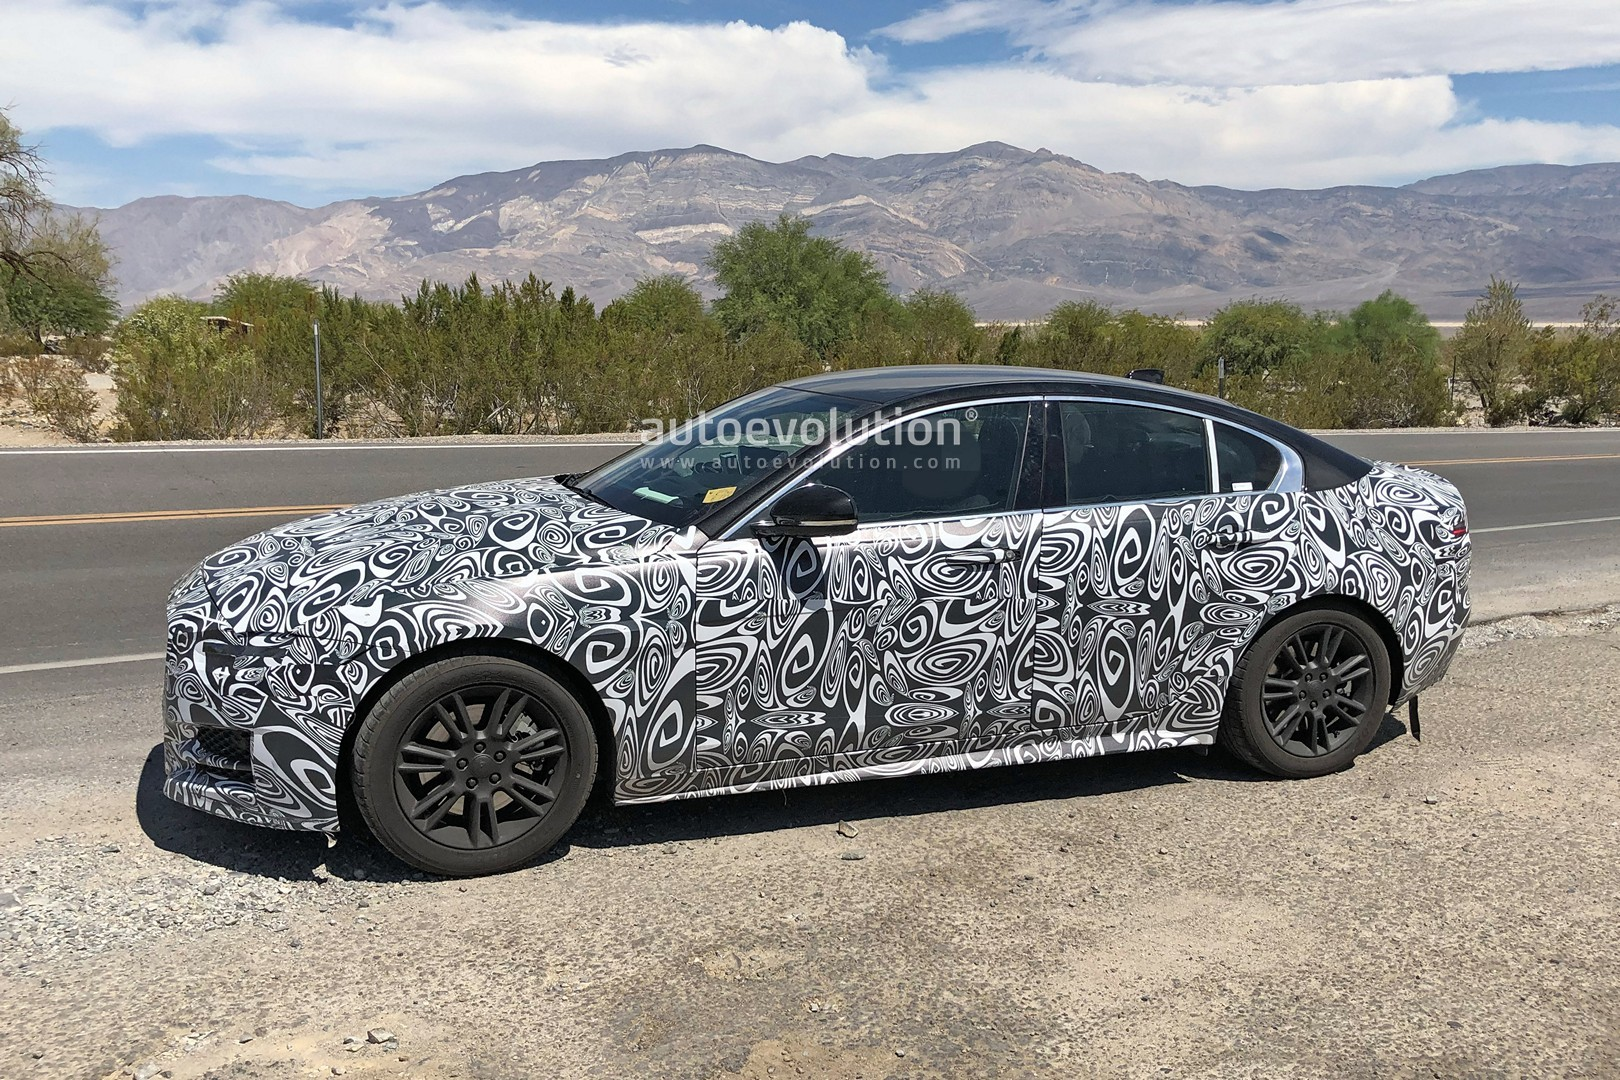 37 All New 2020 All Jaguar Xe Sedan Price and Release date